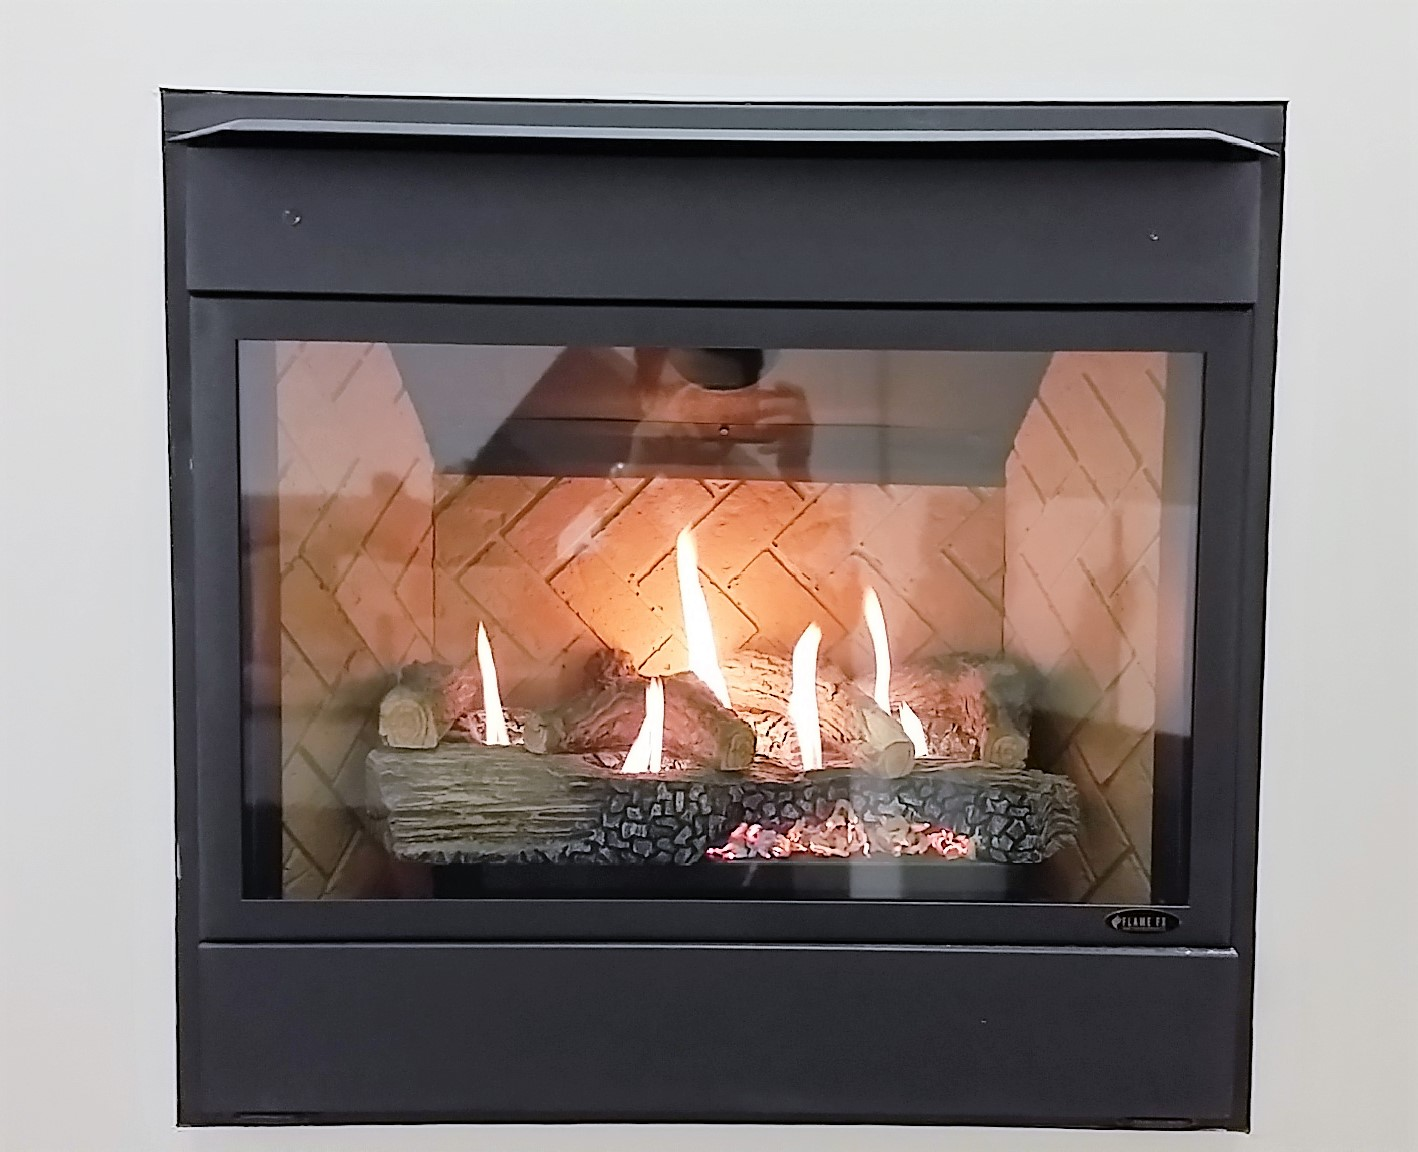 Charmglow Electric Fireplace Lovely Best Replace Gas Fireplace with Electric Freshomedaily